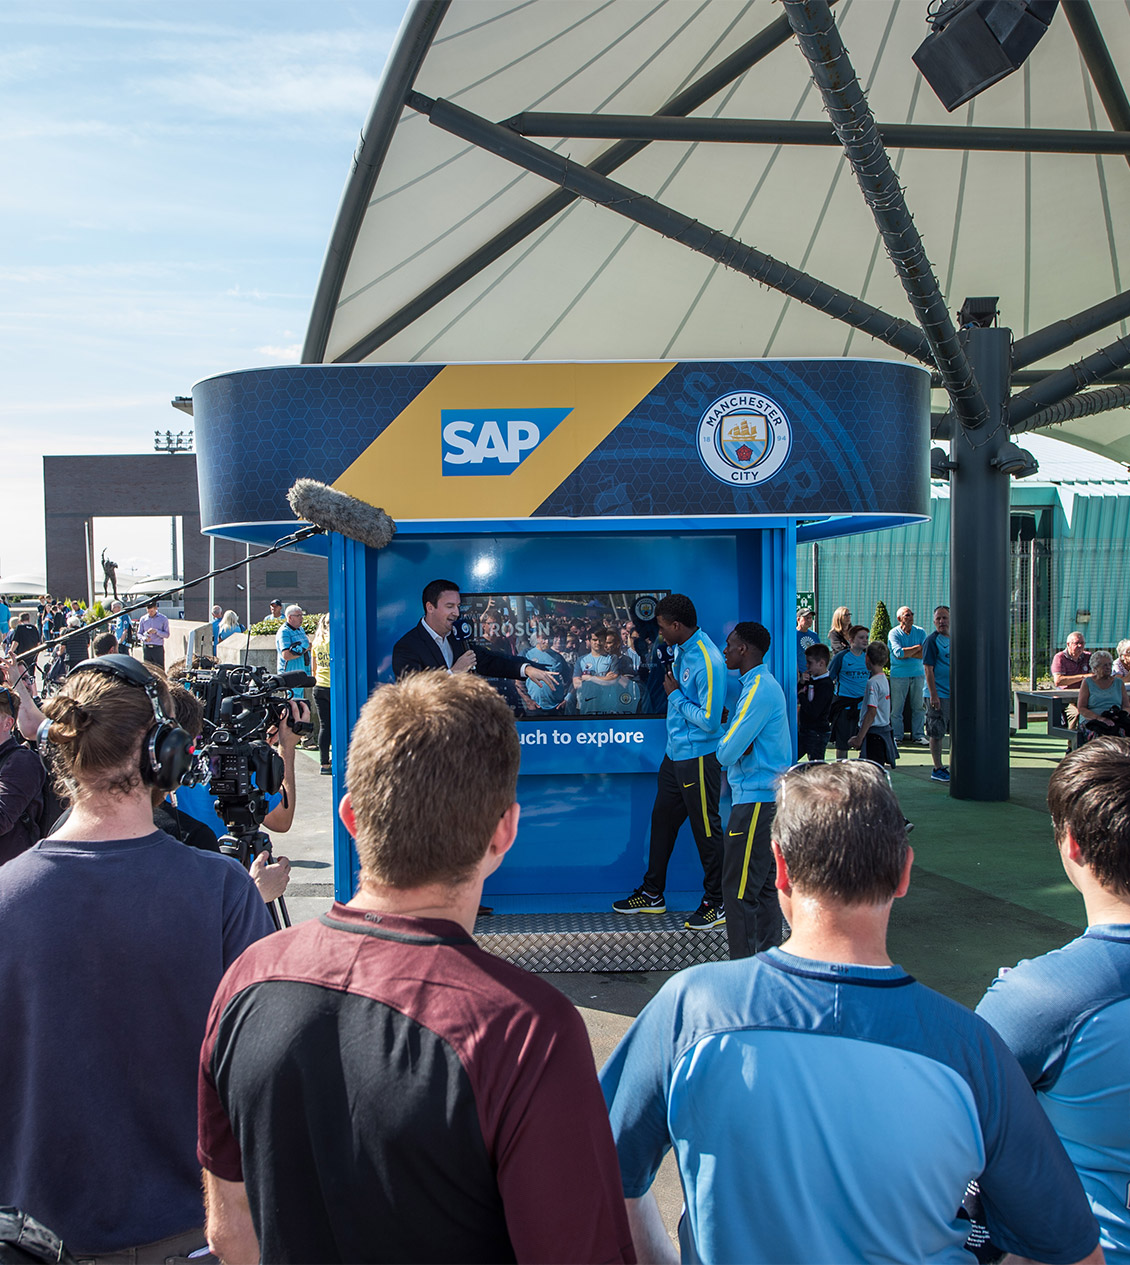 The SAP booth in City Square at the Etihad Stadium